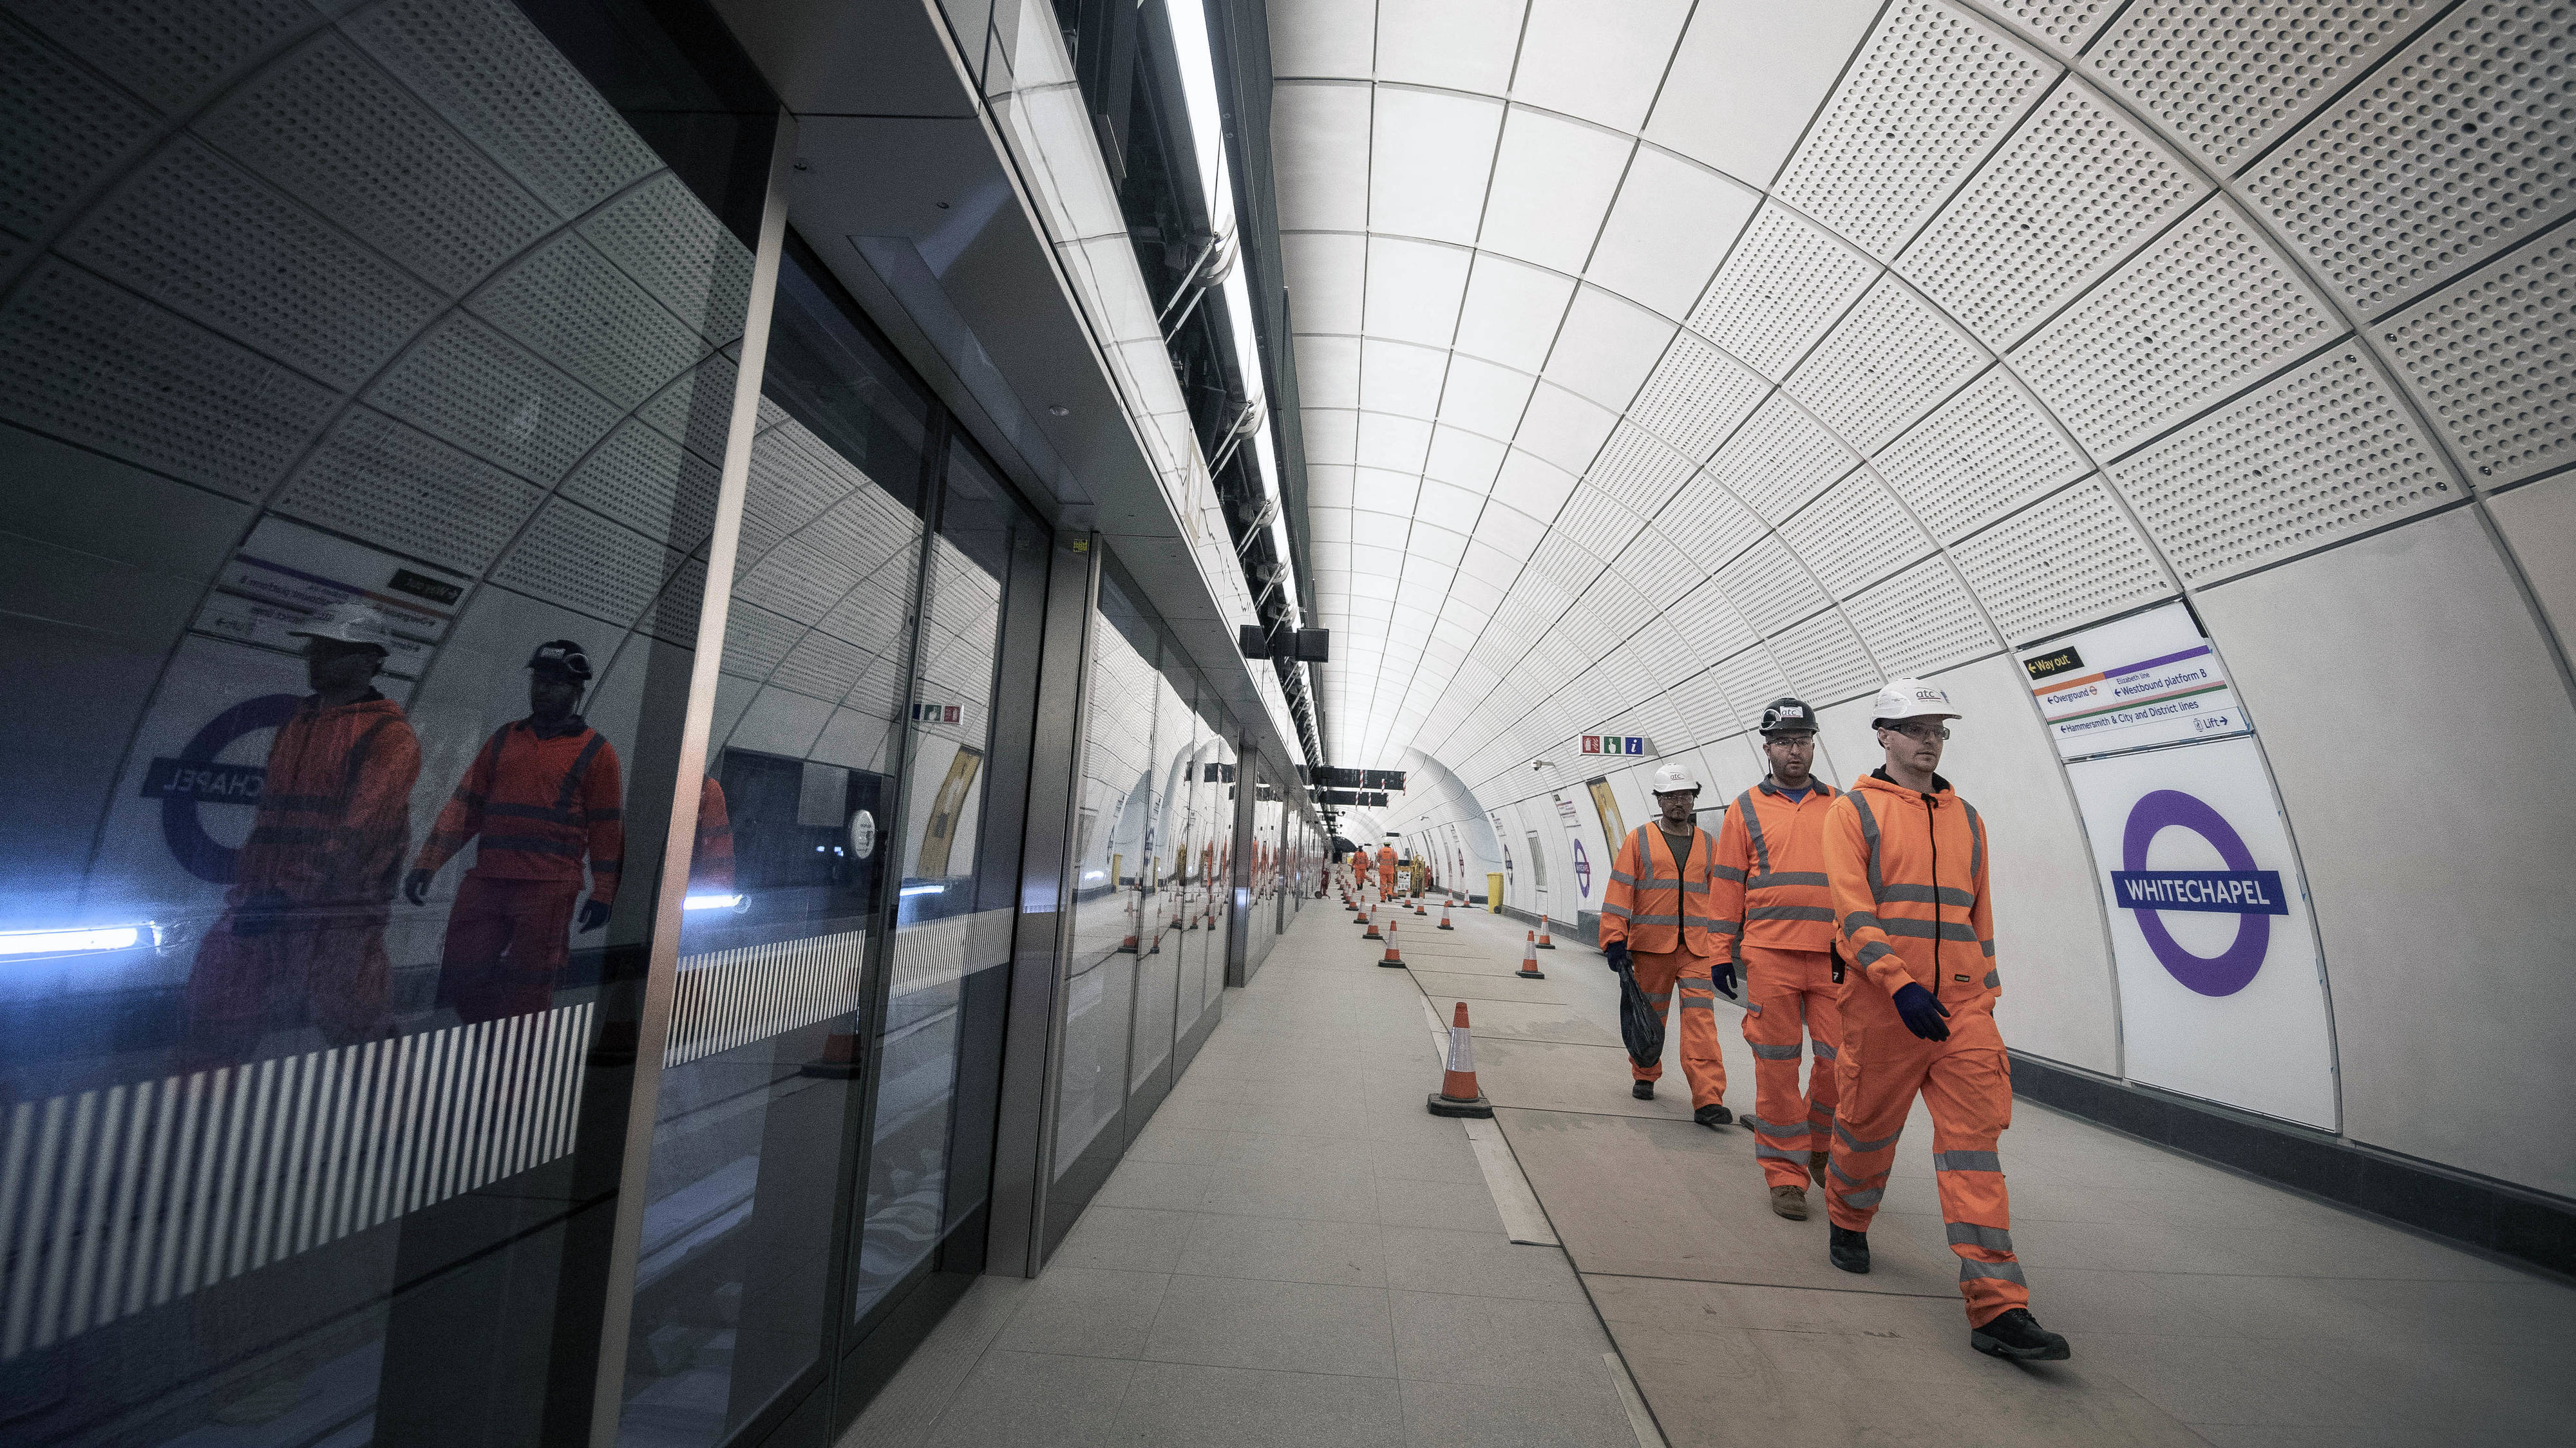 Crossrail delayed until 2021 and will cost up to £650m more